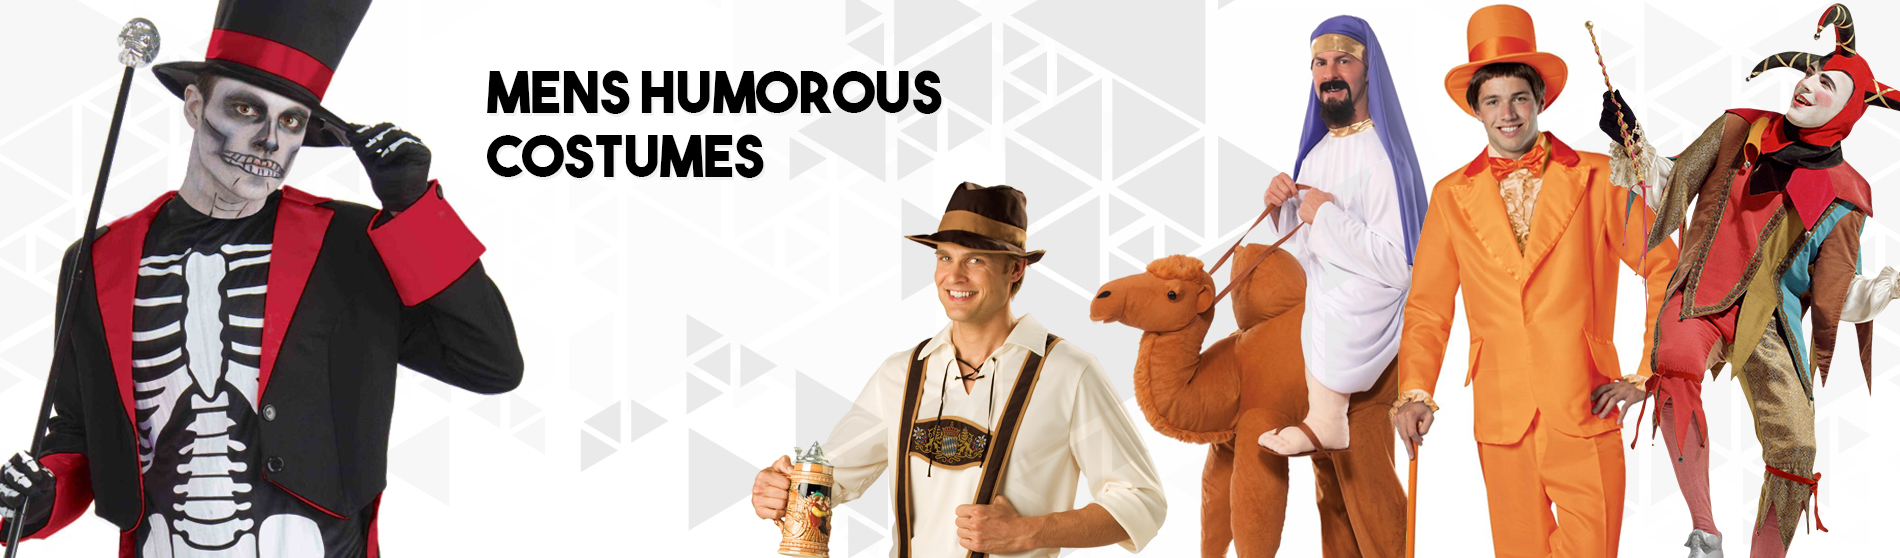 Mens Homorous Costumes